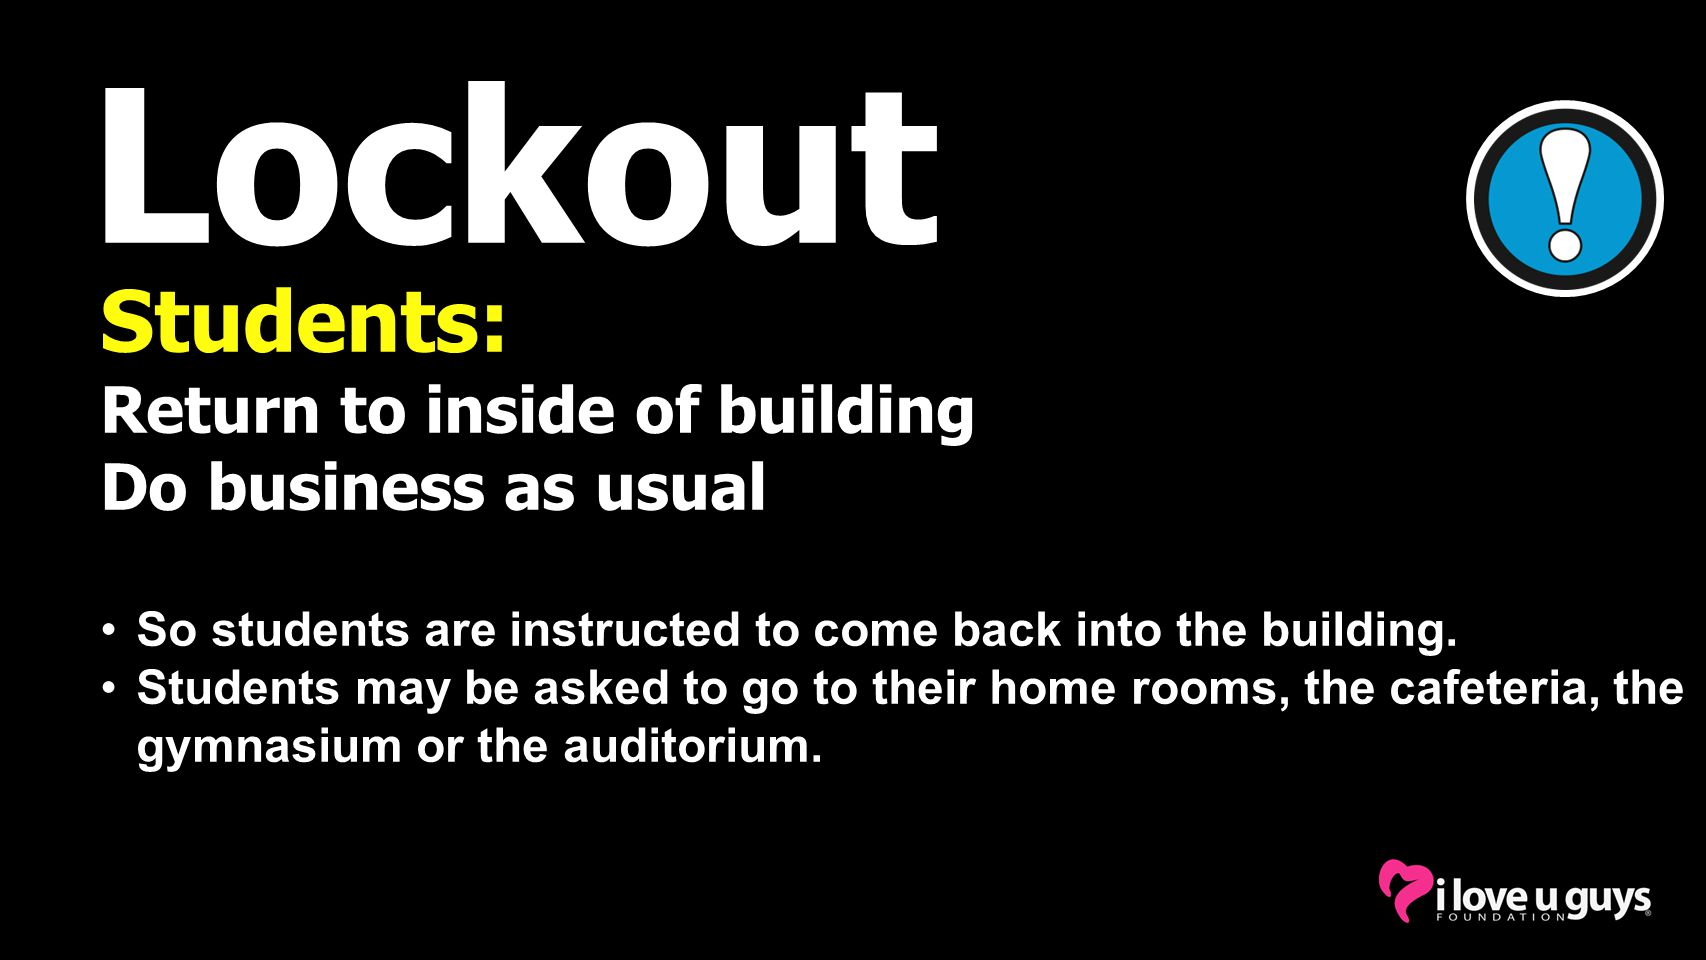 Lockout Students: Return to inside of building Do business as usual